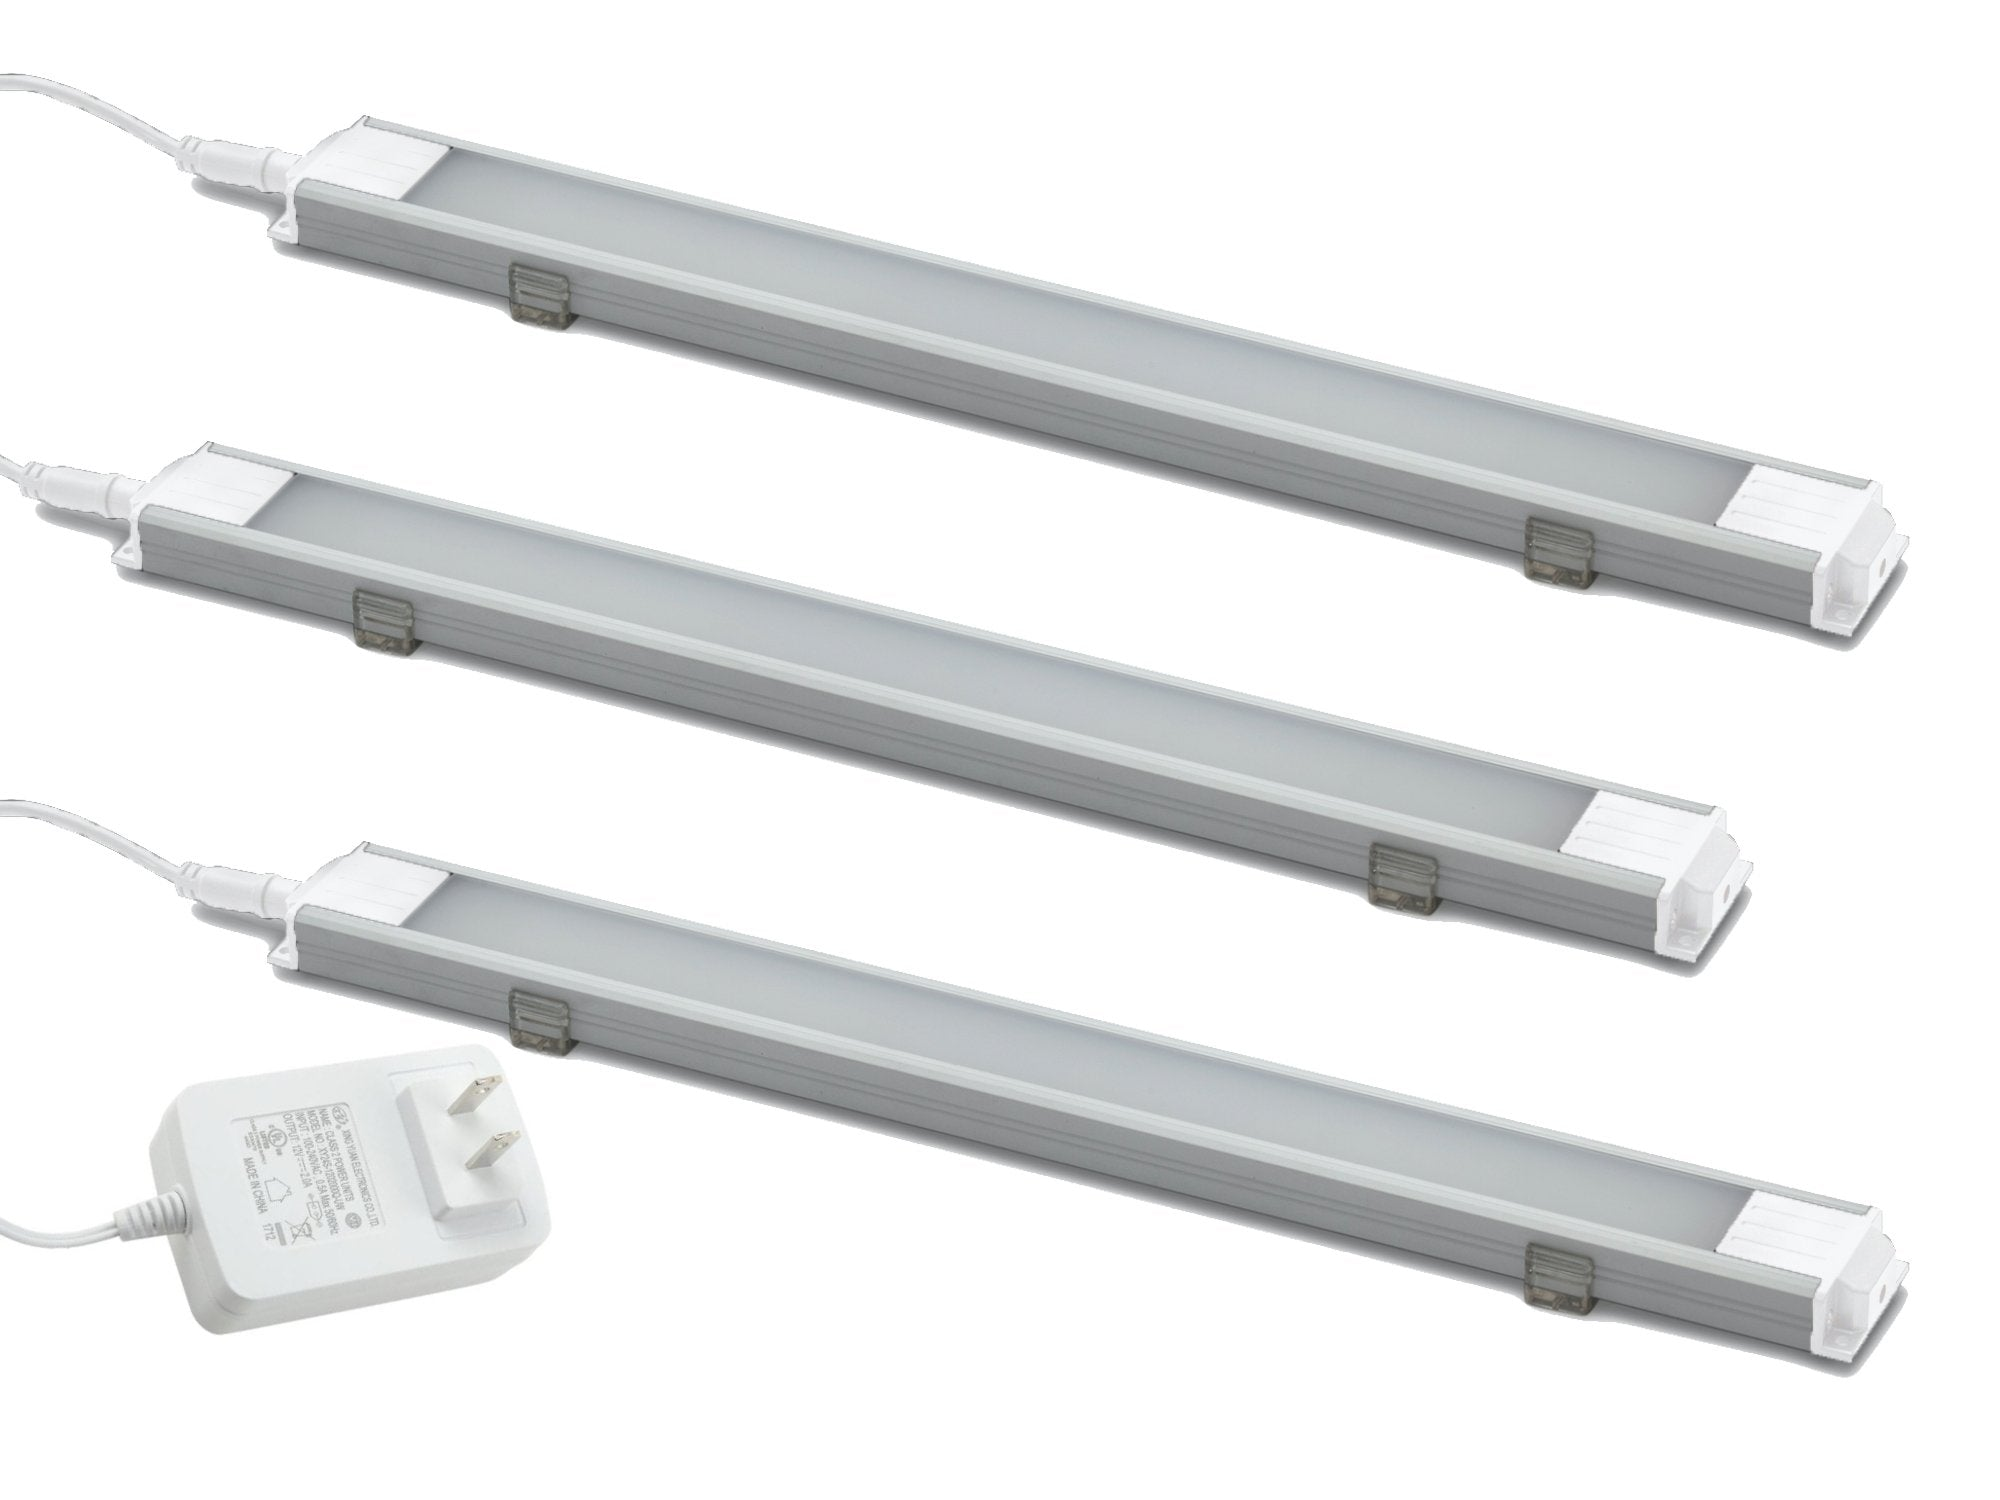 LED Display Lights (1 x Light Adapters, 2 x Light Extensions)